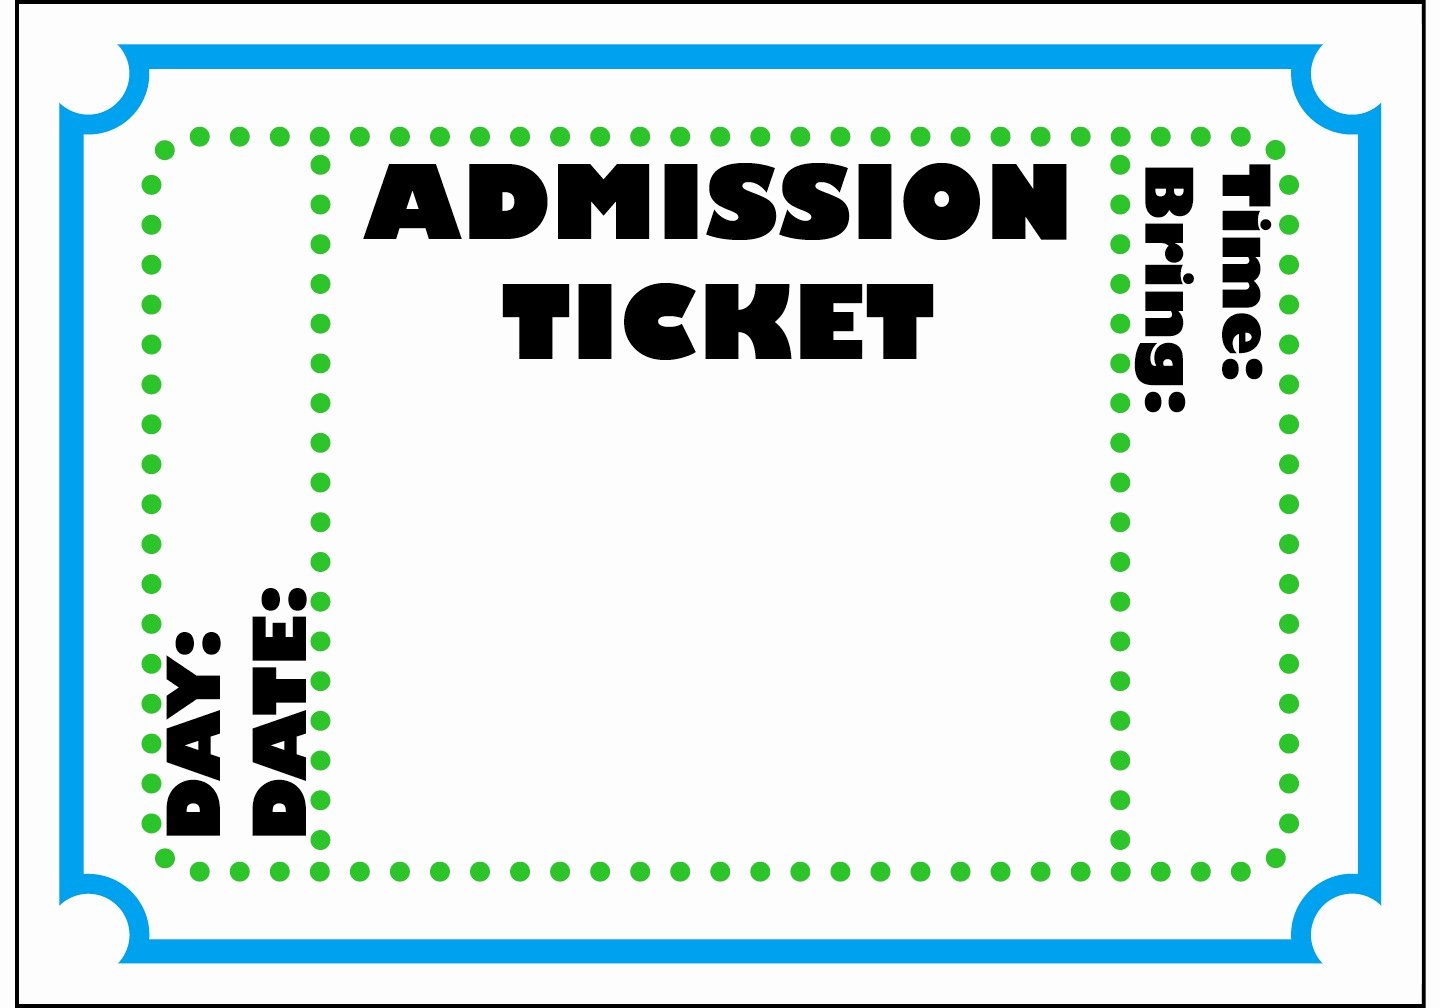 Free Movie Ticket Template for Word Fresh Admit E Ticket Template Example Mughals